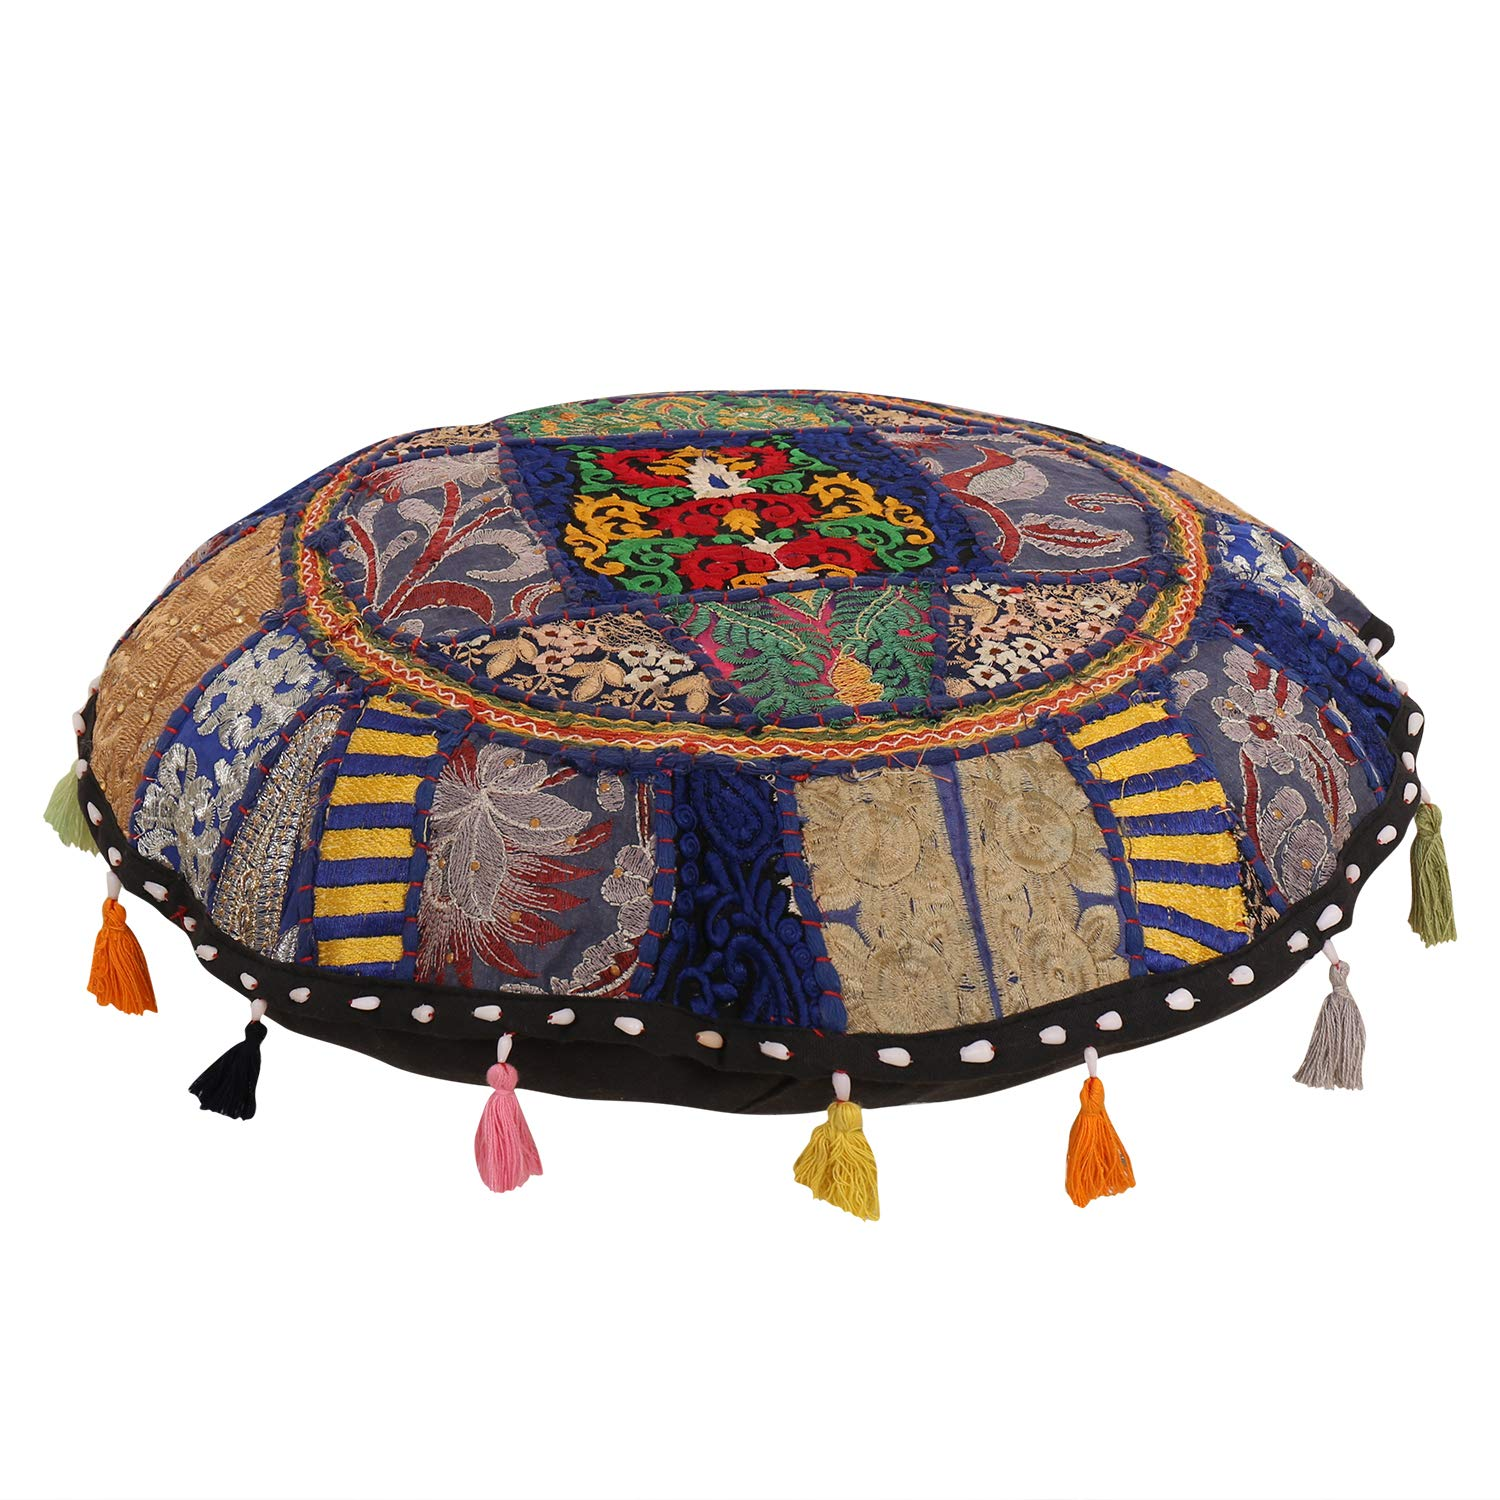 Beautiful Decorative Ruond Ottoman Indian Patchwork Pouffe,Indian Traditional Home Decorative Handmade Cotton Ottoman Patchwork Foot Stool, Embroidered Chair Cover Vintage Pouf 21,Indian Cushion Set Janki Creation